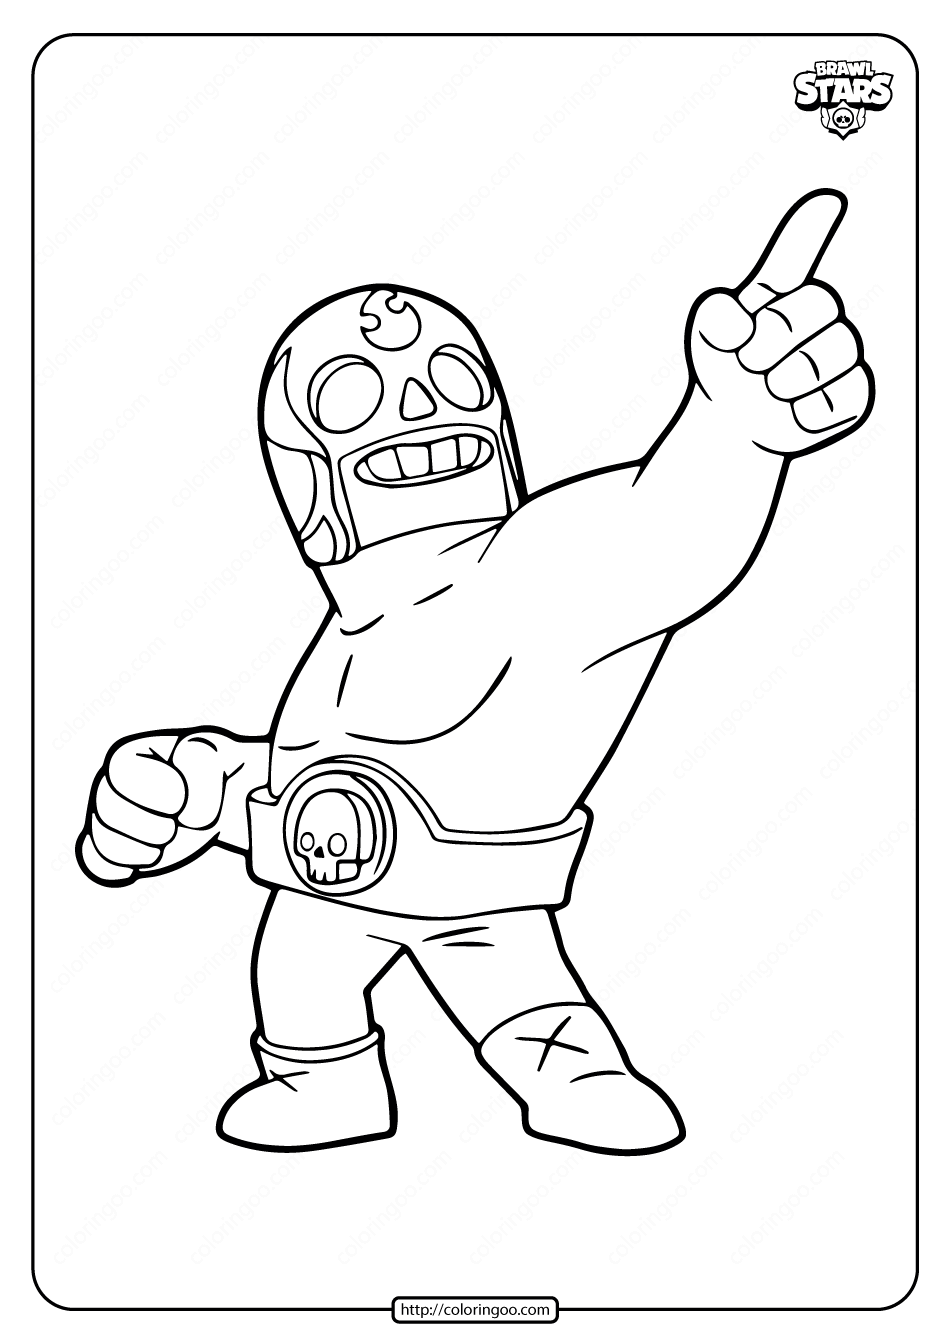 El Primo Brawl Stars Coloring Pages